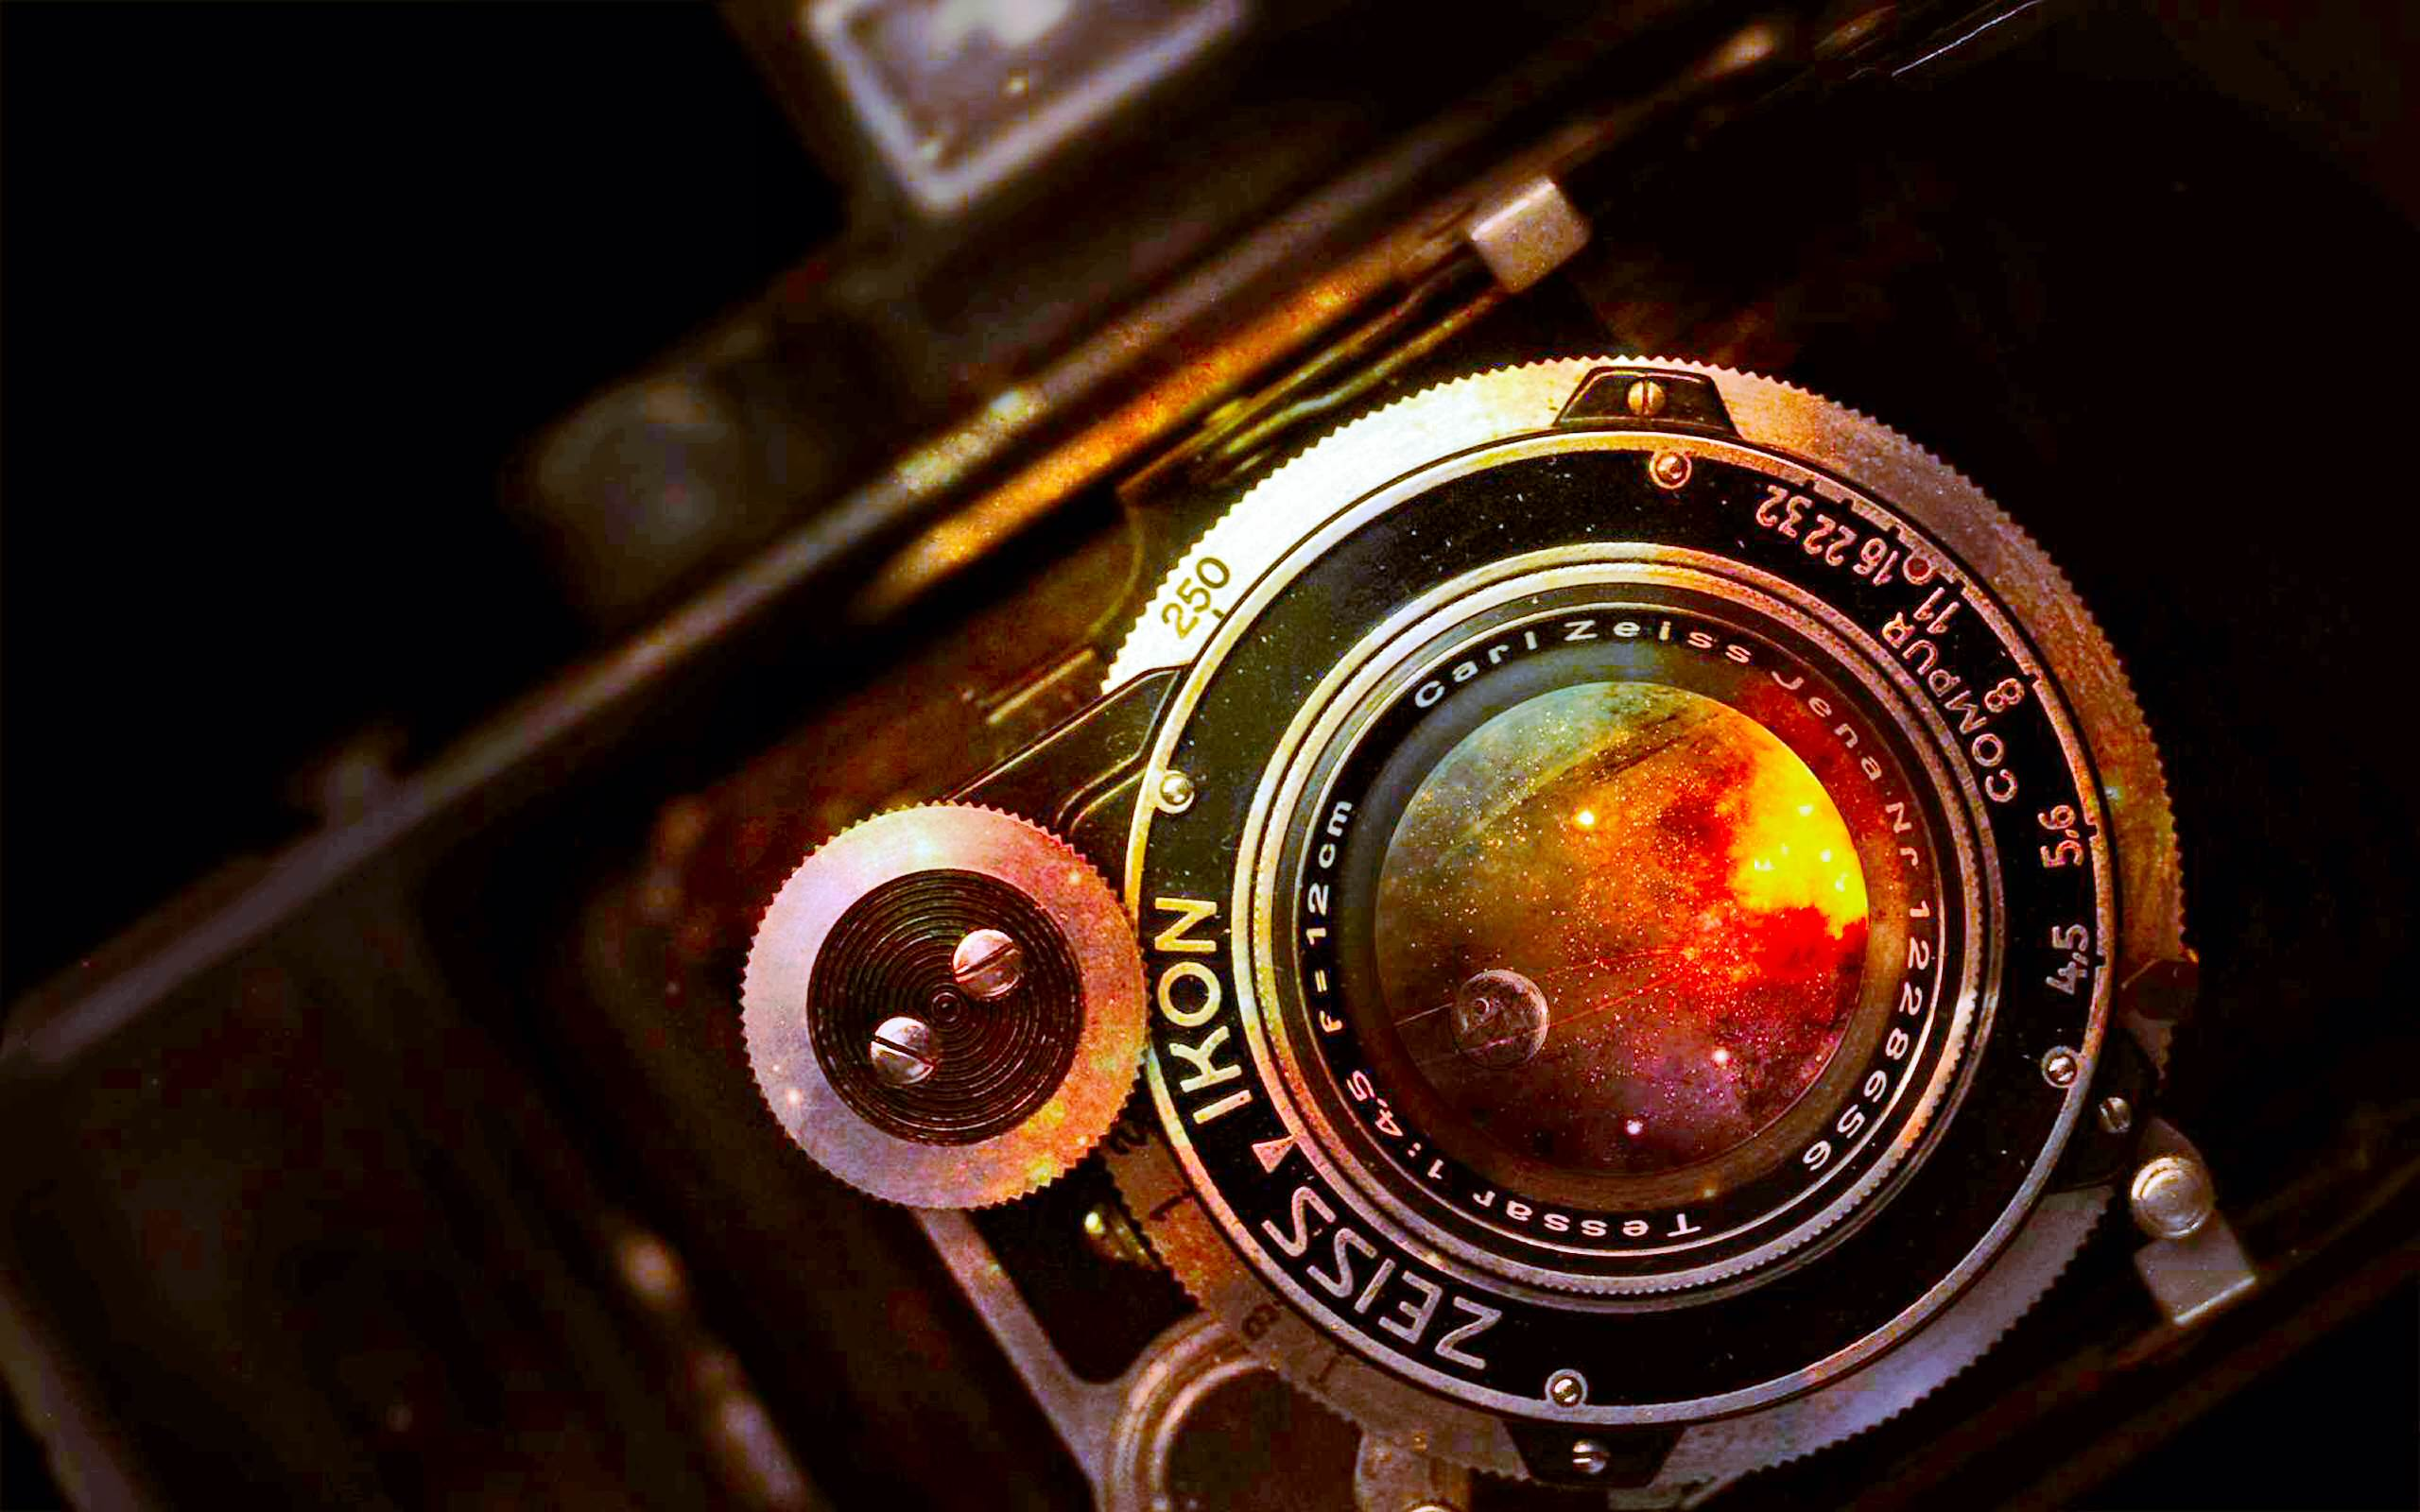 Vintage Carlzeiss Camera Wallpaper